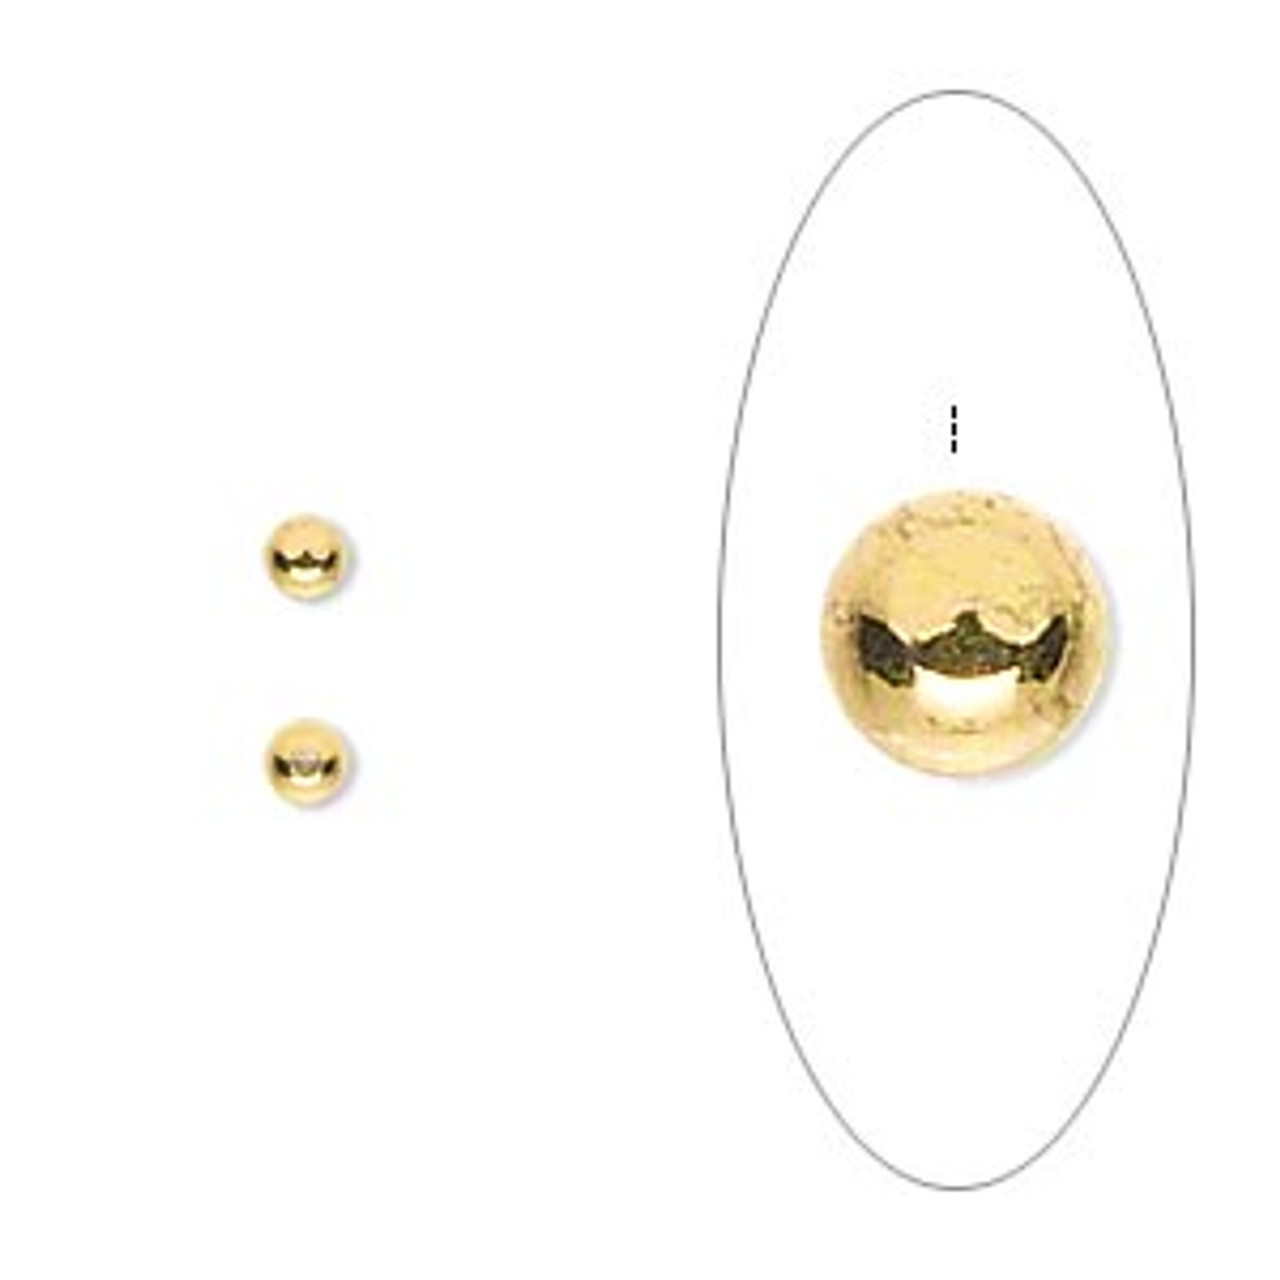 12pk Bead end, gold-plated brass, 3mm half-drilled round, for use with memory wire